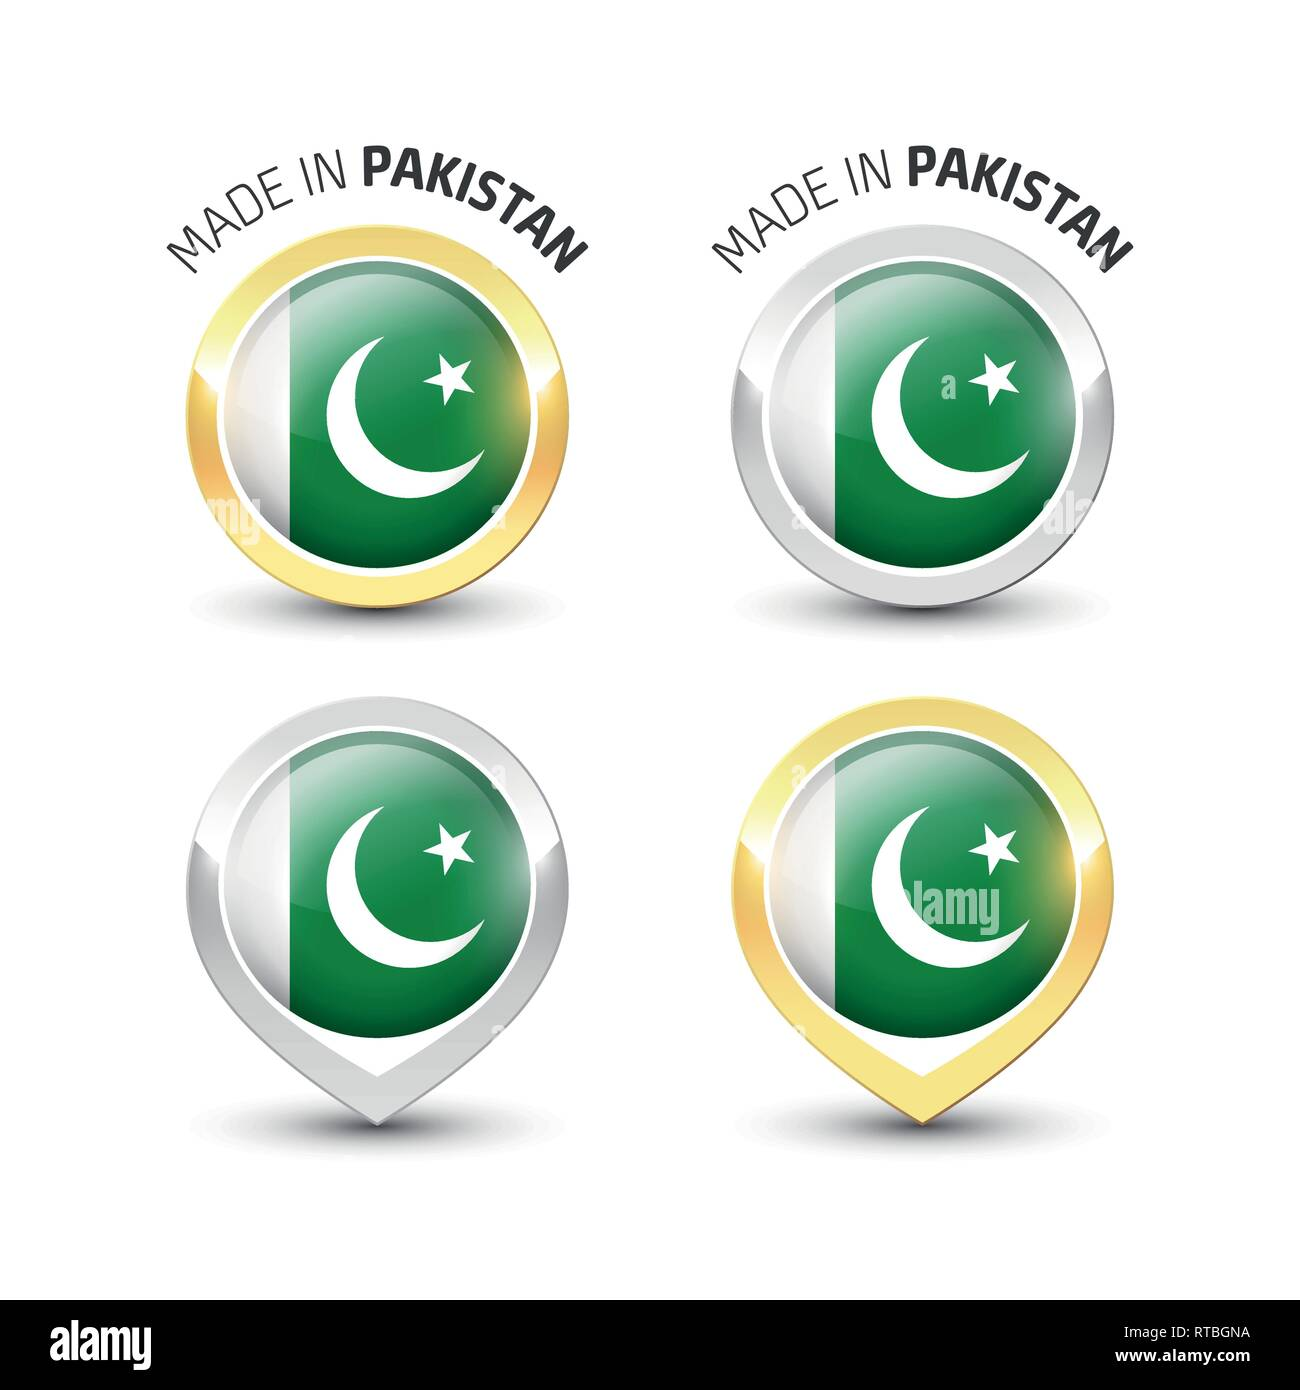 ca776ccfdd Made in Pakistan - Guarantee label with the Pakistani flag inside round  gold and silver icons